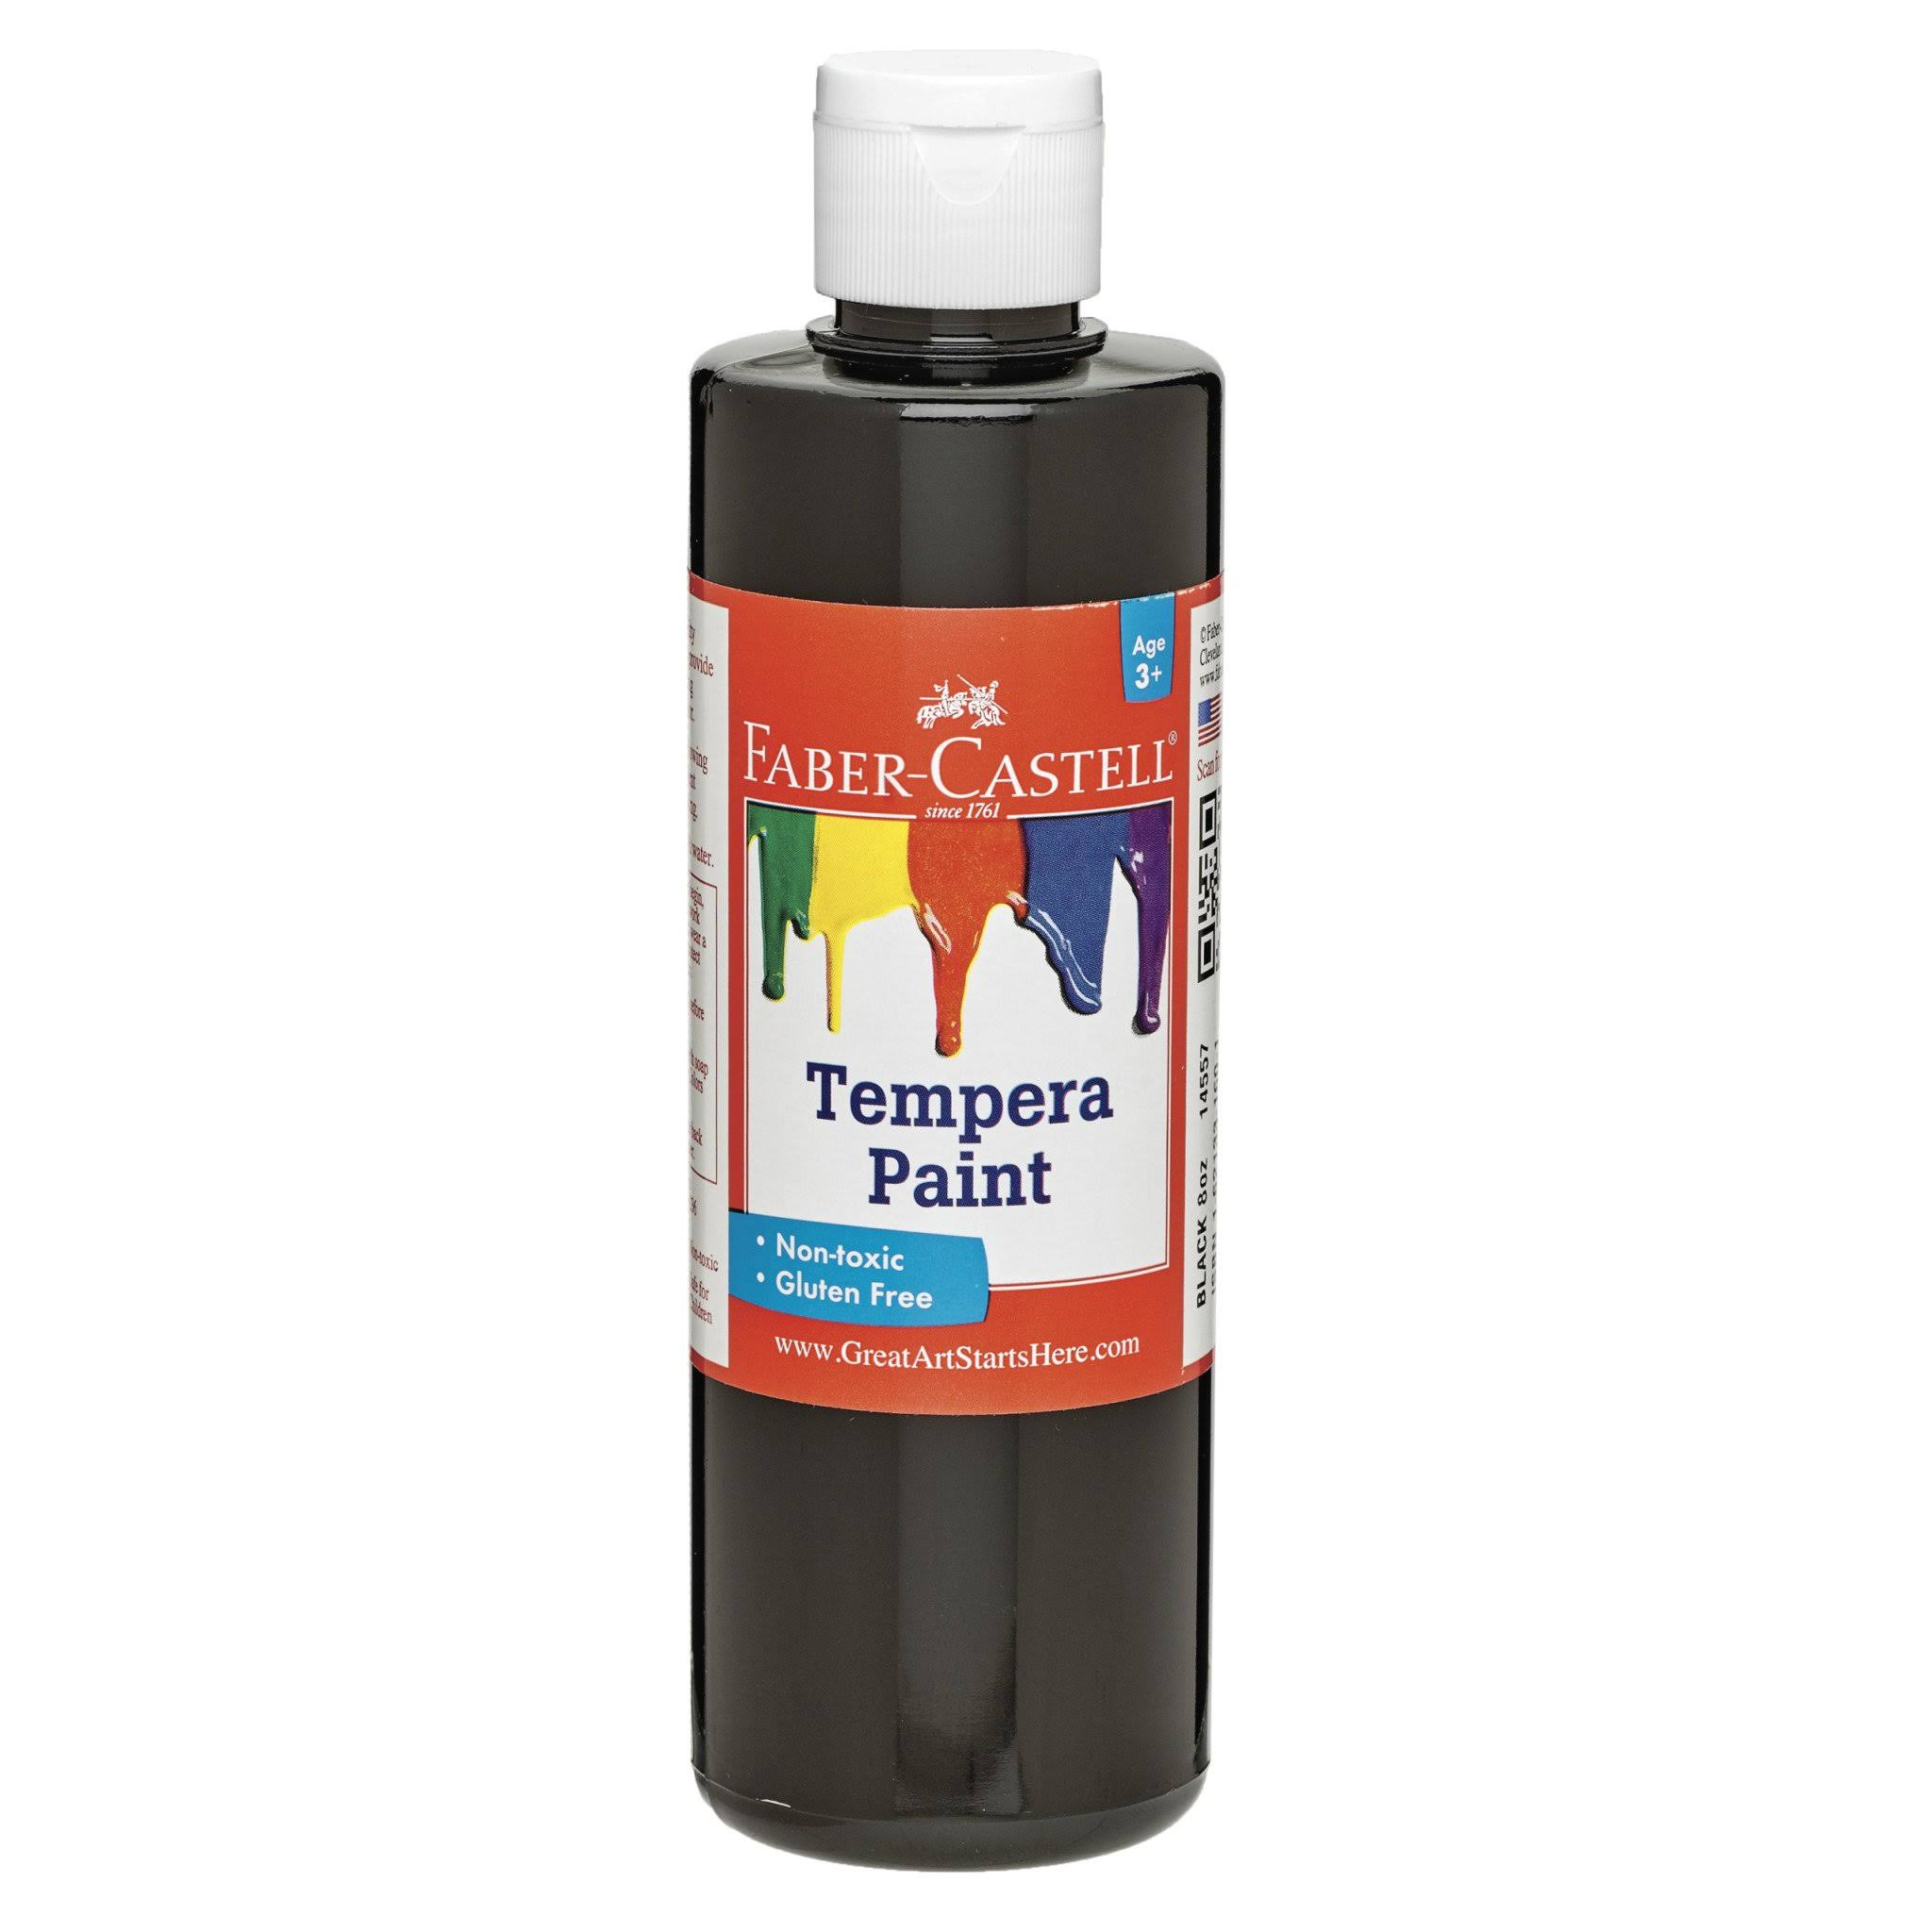 Faber-Castell Black Tempera Paint 8 oz